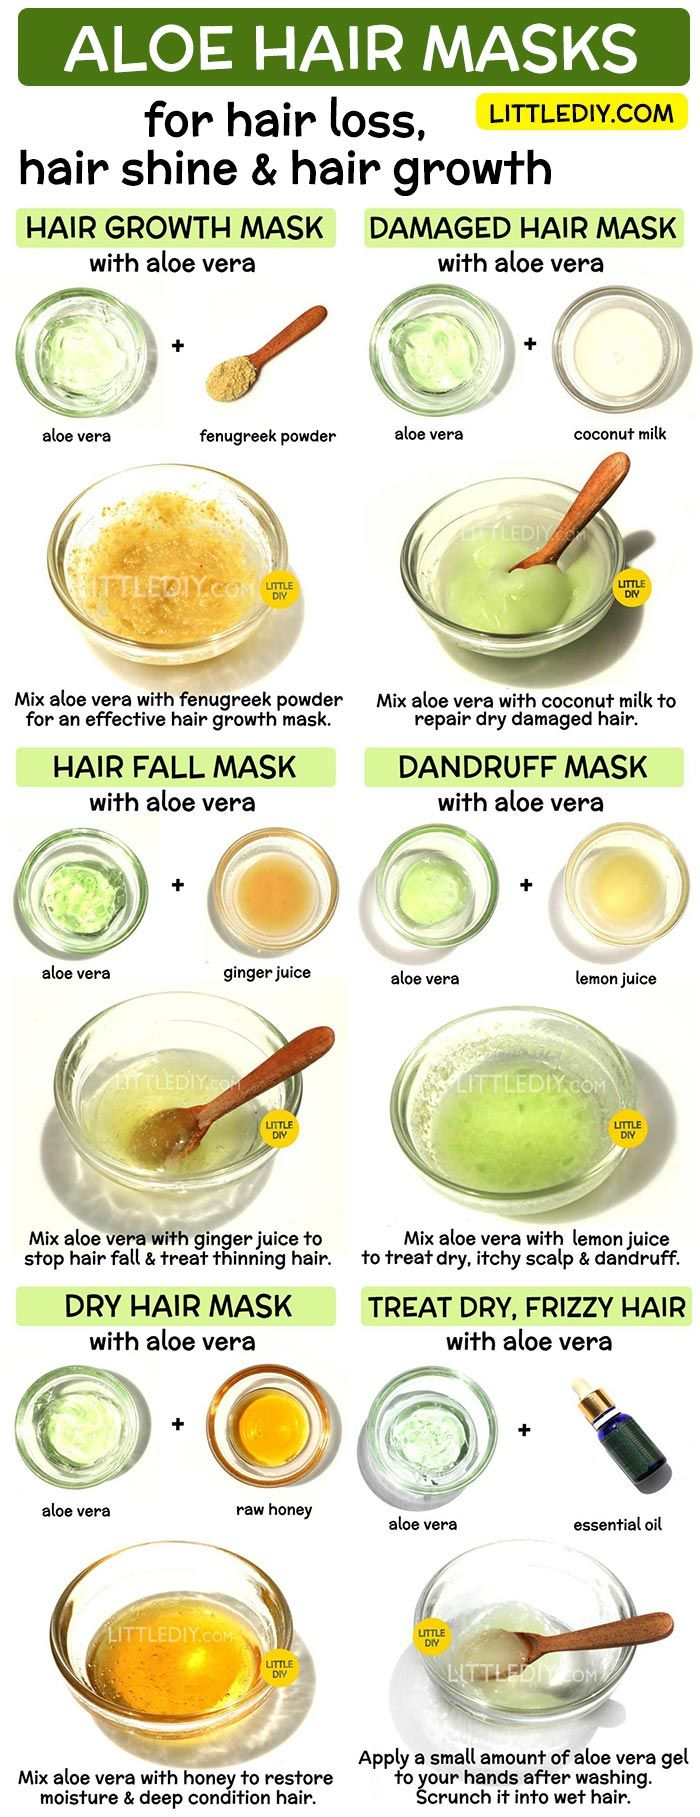 ALOE VERA HAIR MASKS for hair growth, hair loss and shine